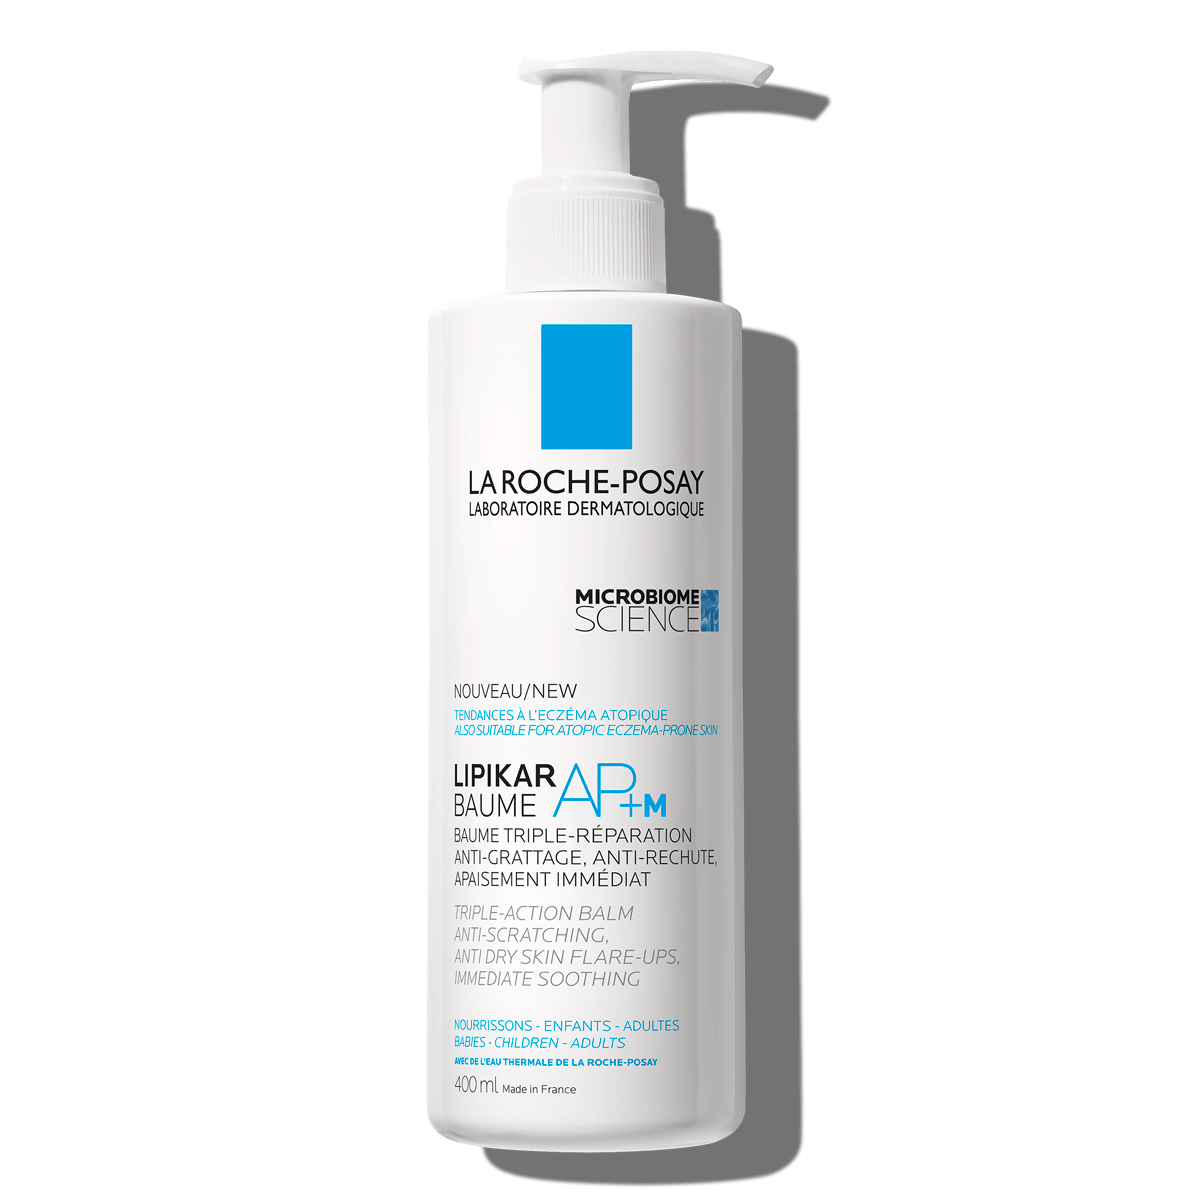 La Roche Posay Body Care Lipikar Baume AP+ 400ml Lipid Replenishing Balm Anti Irritation Scratching 000 3337872418570 Front Strong Shadow